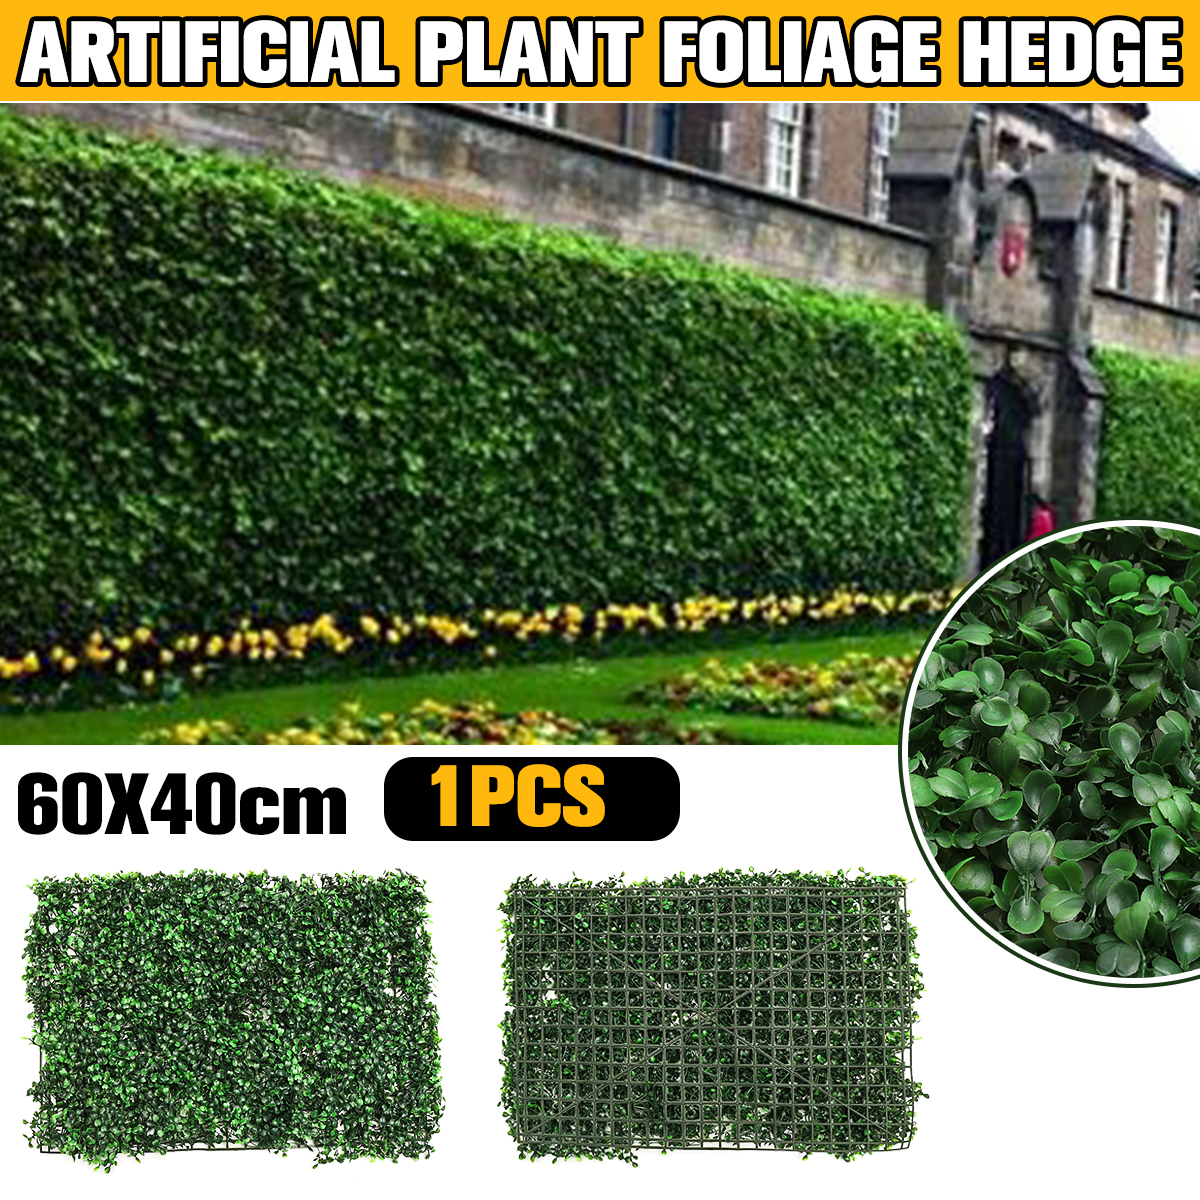 Artificial Grass Plant Wall Garden Landscape Home Decorations Artificial Lawn Turf Simulation Plants Landscaping Green